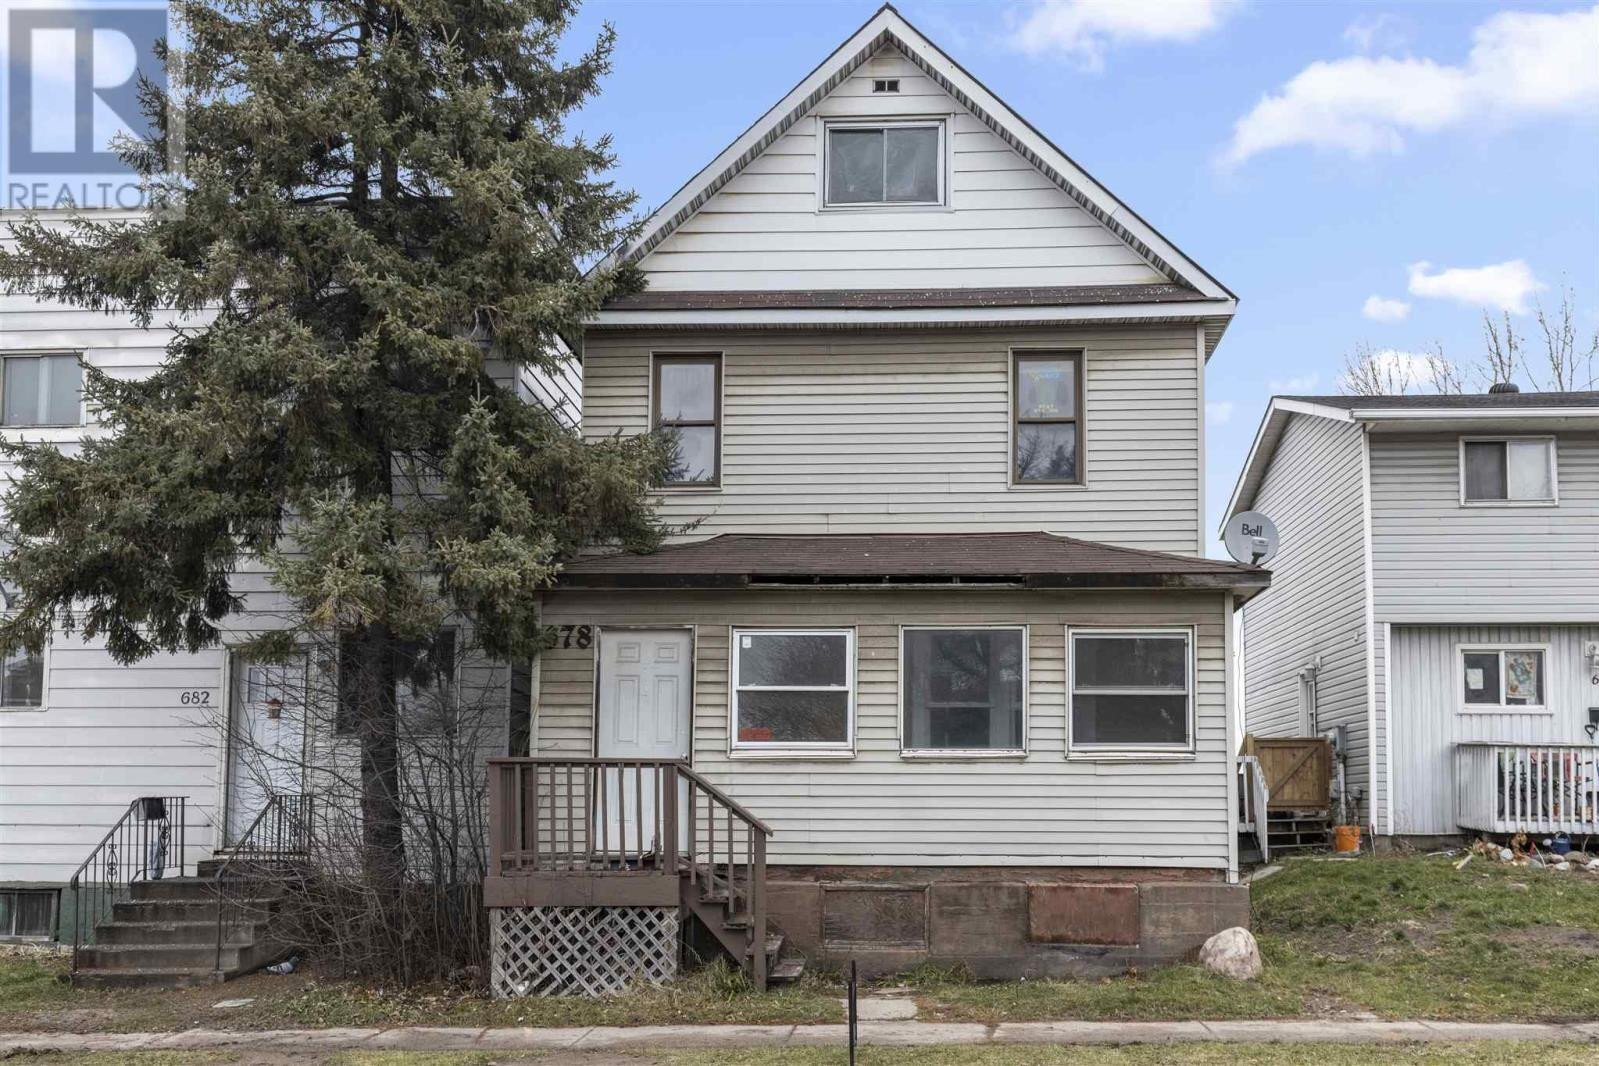 House for sale at 678 Albert St W Sault Ste. Marie Ontario - MLS: SM130363